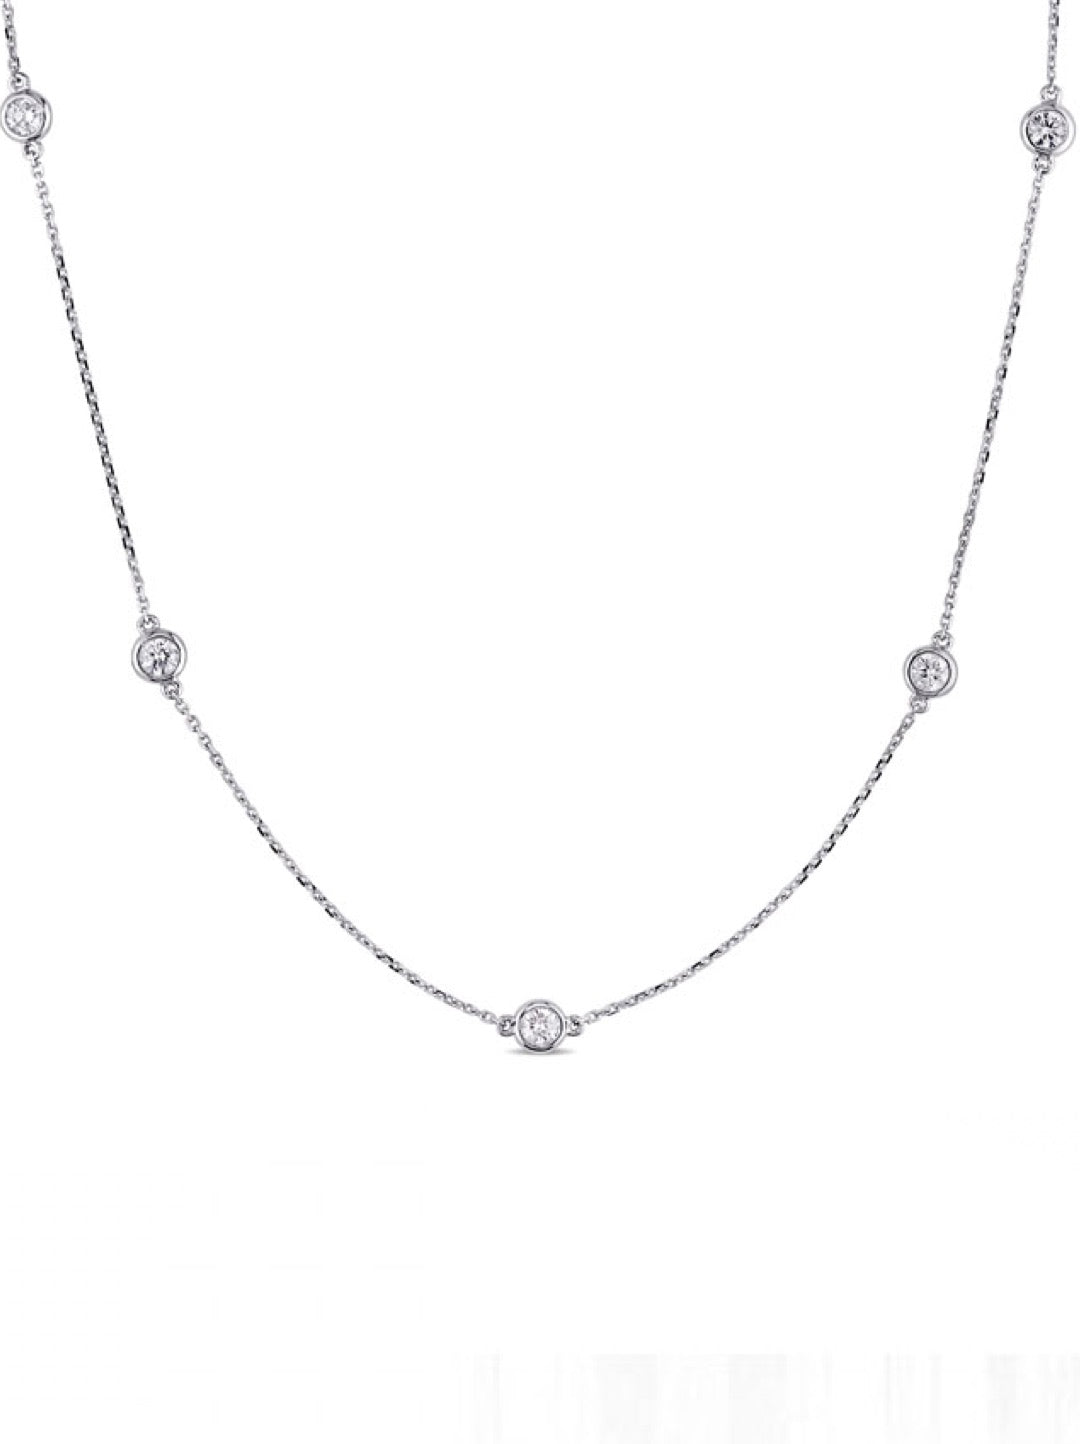 Silver Bezel Set Multi CZ Necklace